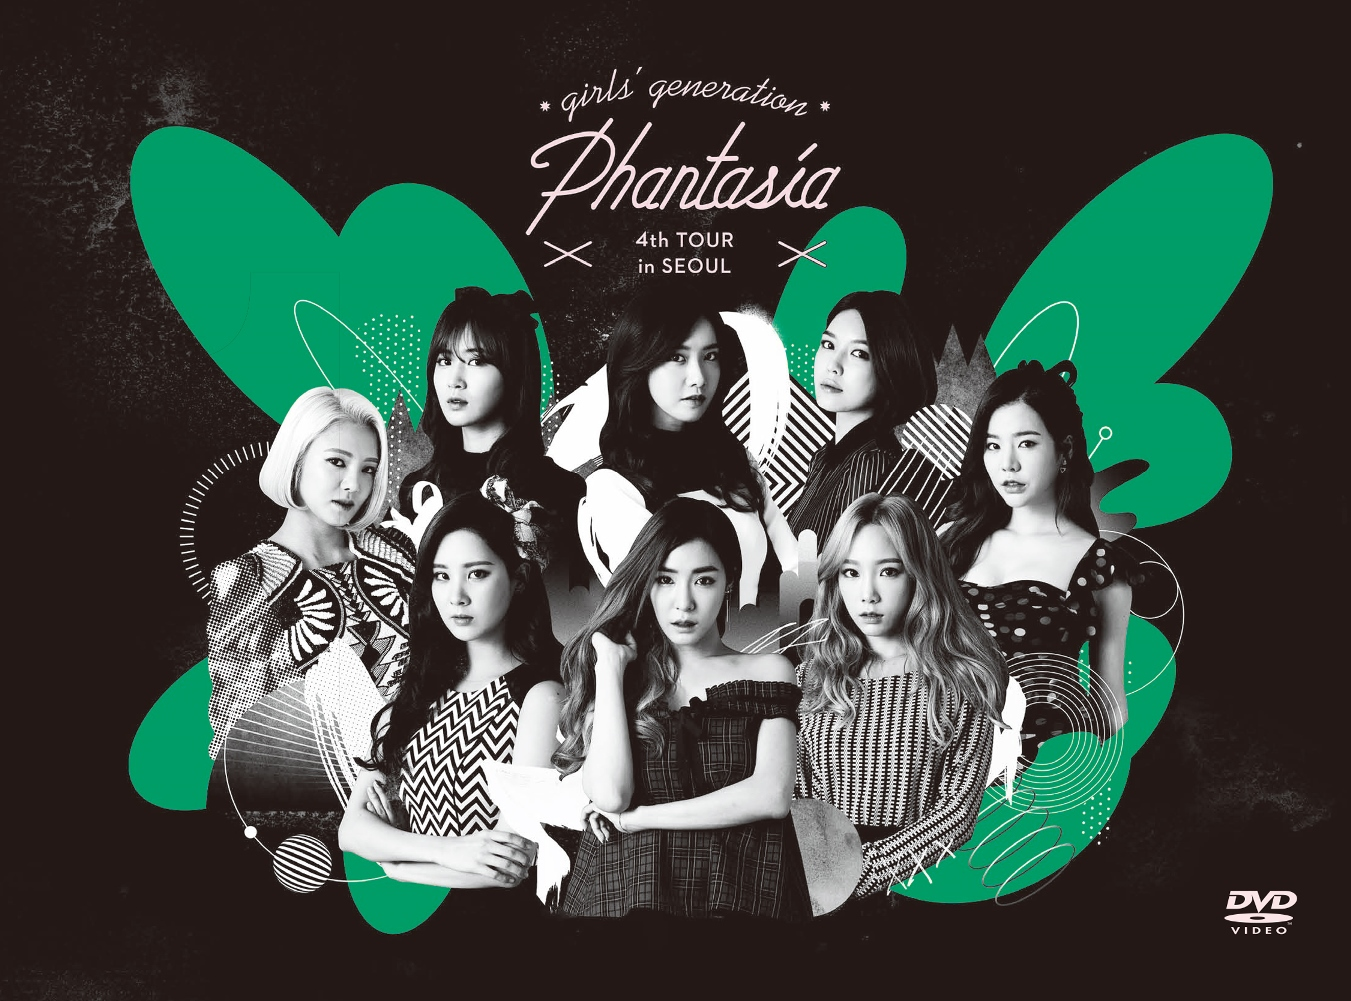 少女時代-Girls' Generation - 4TH TOUR Phantasia in SEOUL《2DVD+寫真書》